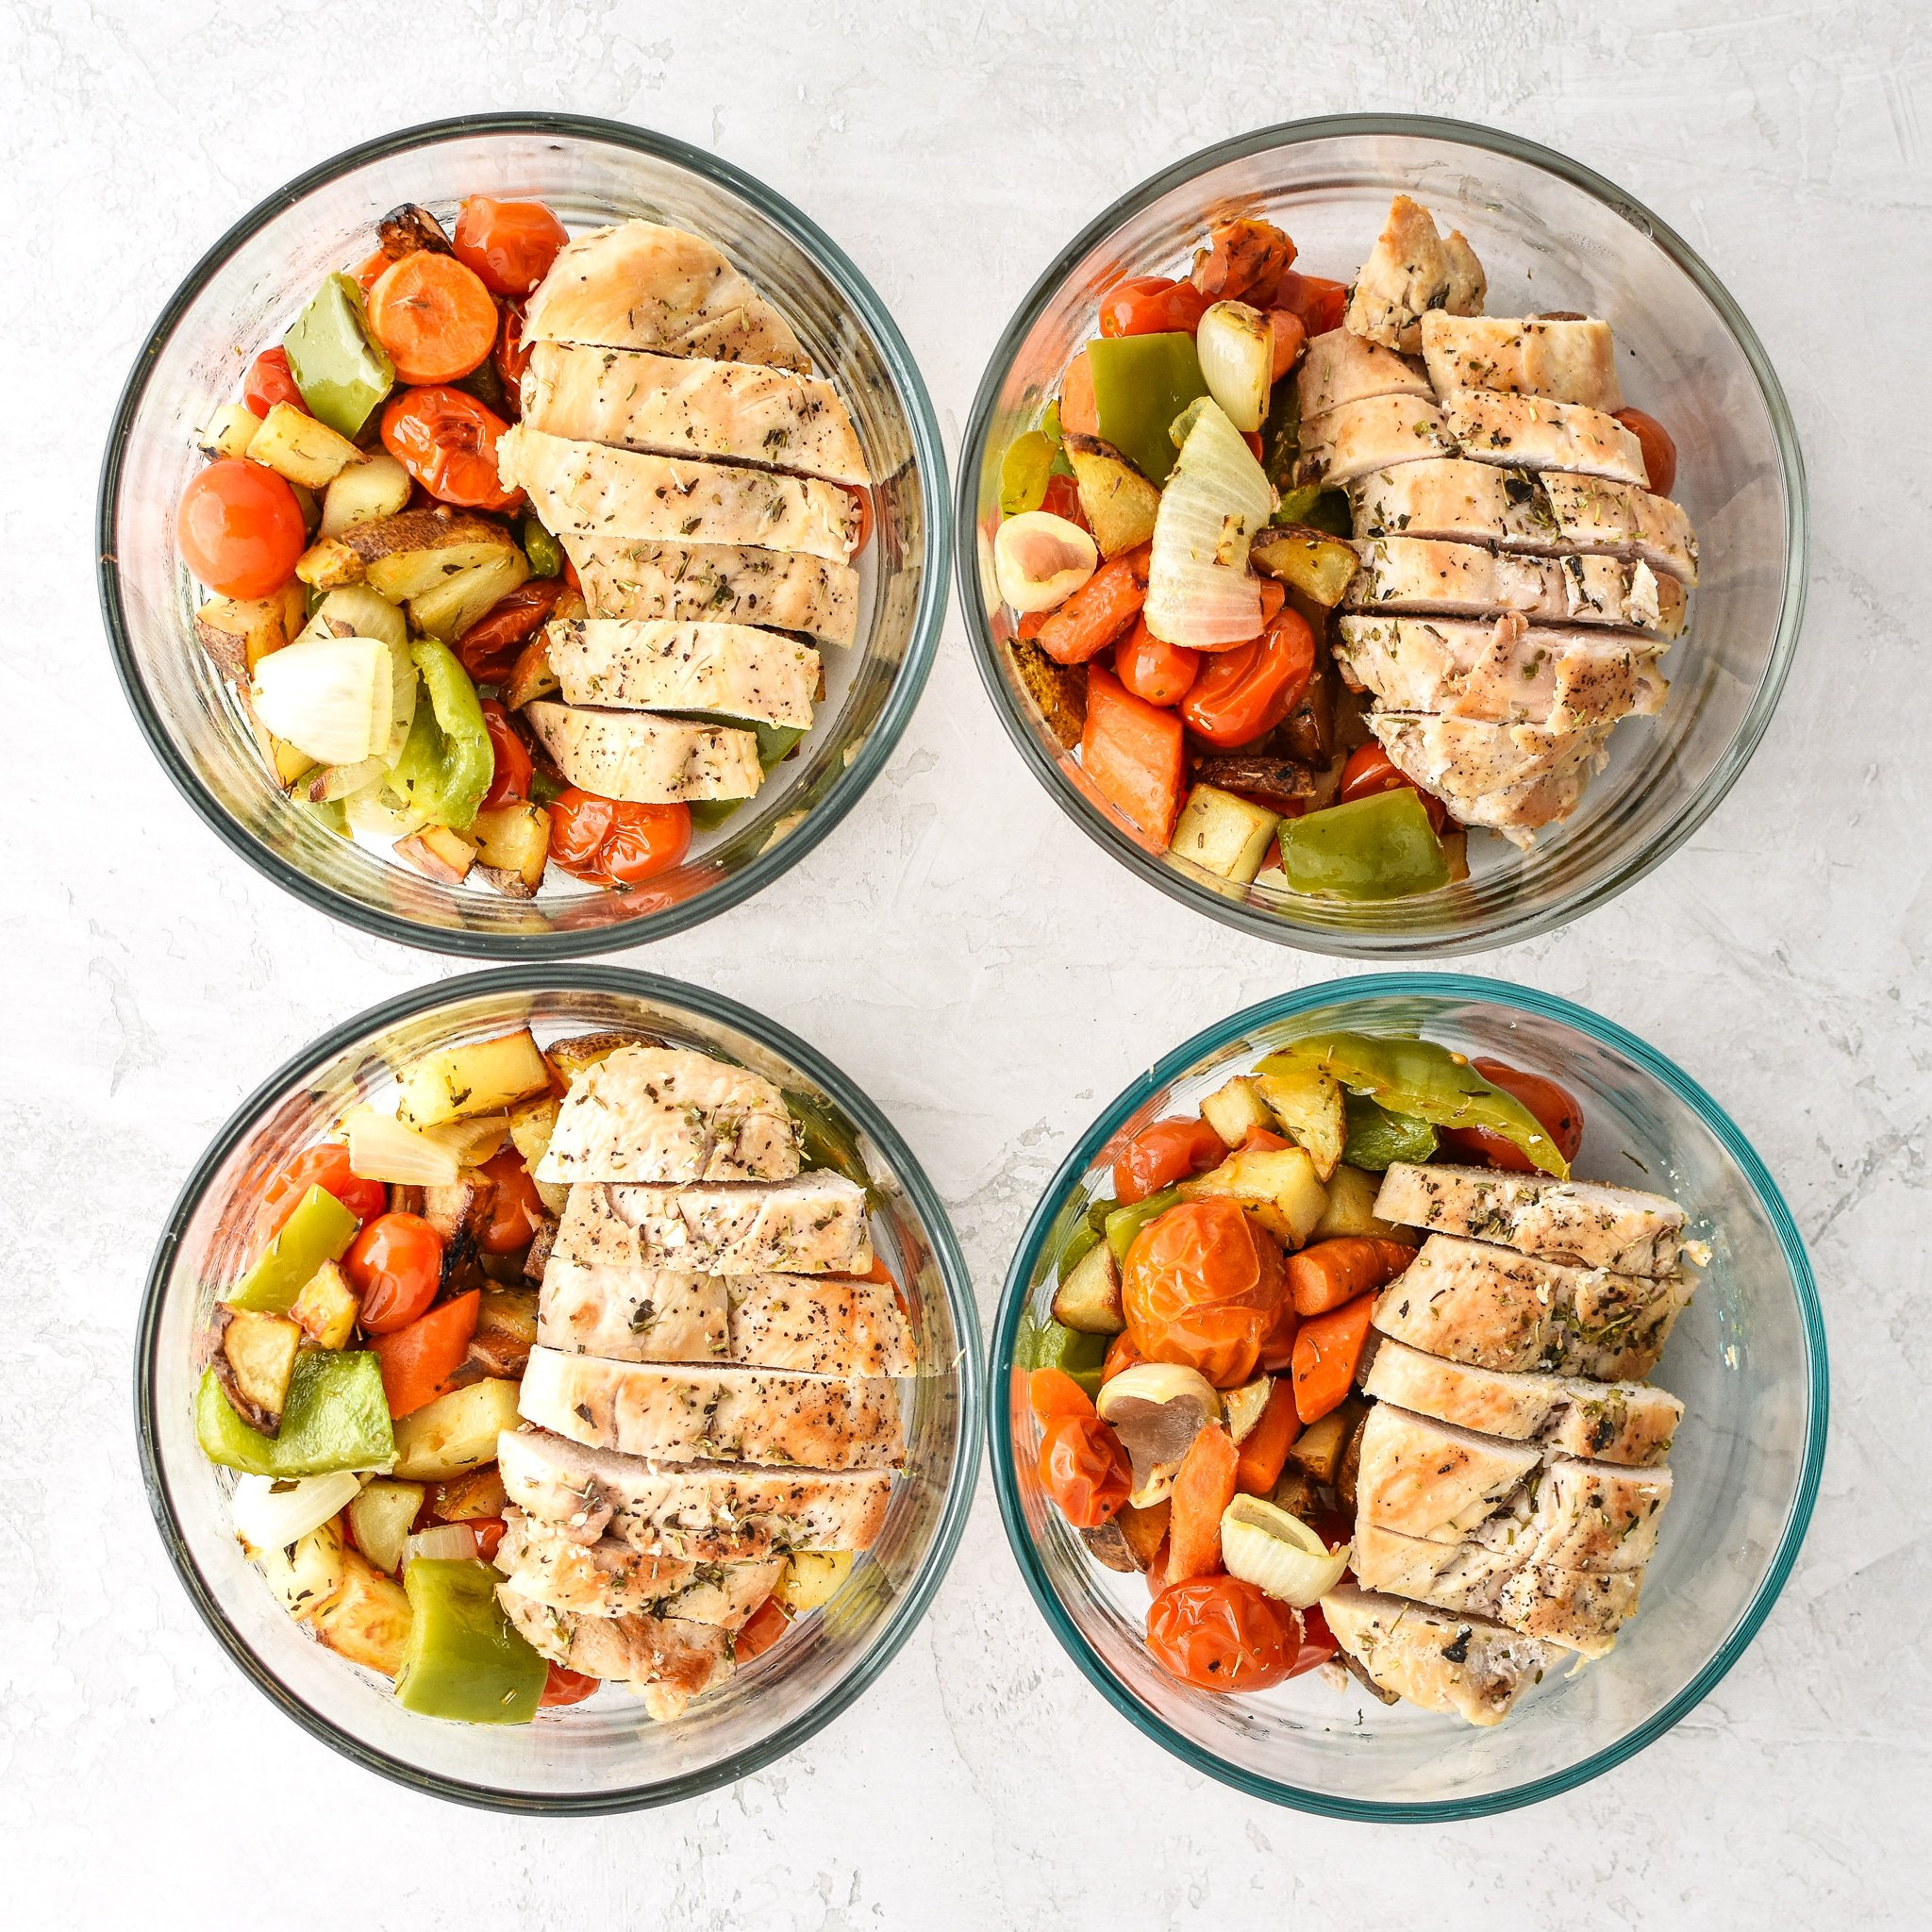 Meal Prep Italian Seasoned Chicken with Roasted Imperfect Vegetables - Simple, healthy, easy italian seasoned chicken with very Imperfect oven roasted potatoes, peppers, cherry tomatoes, carrots, and onions! - ProjectMealPlan.com